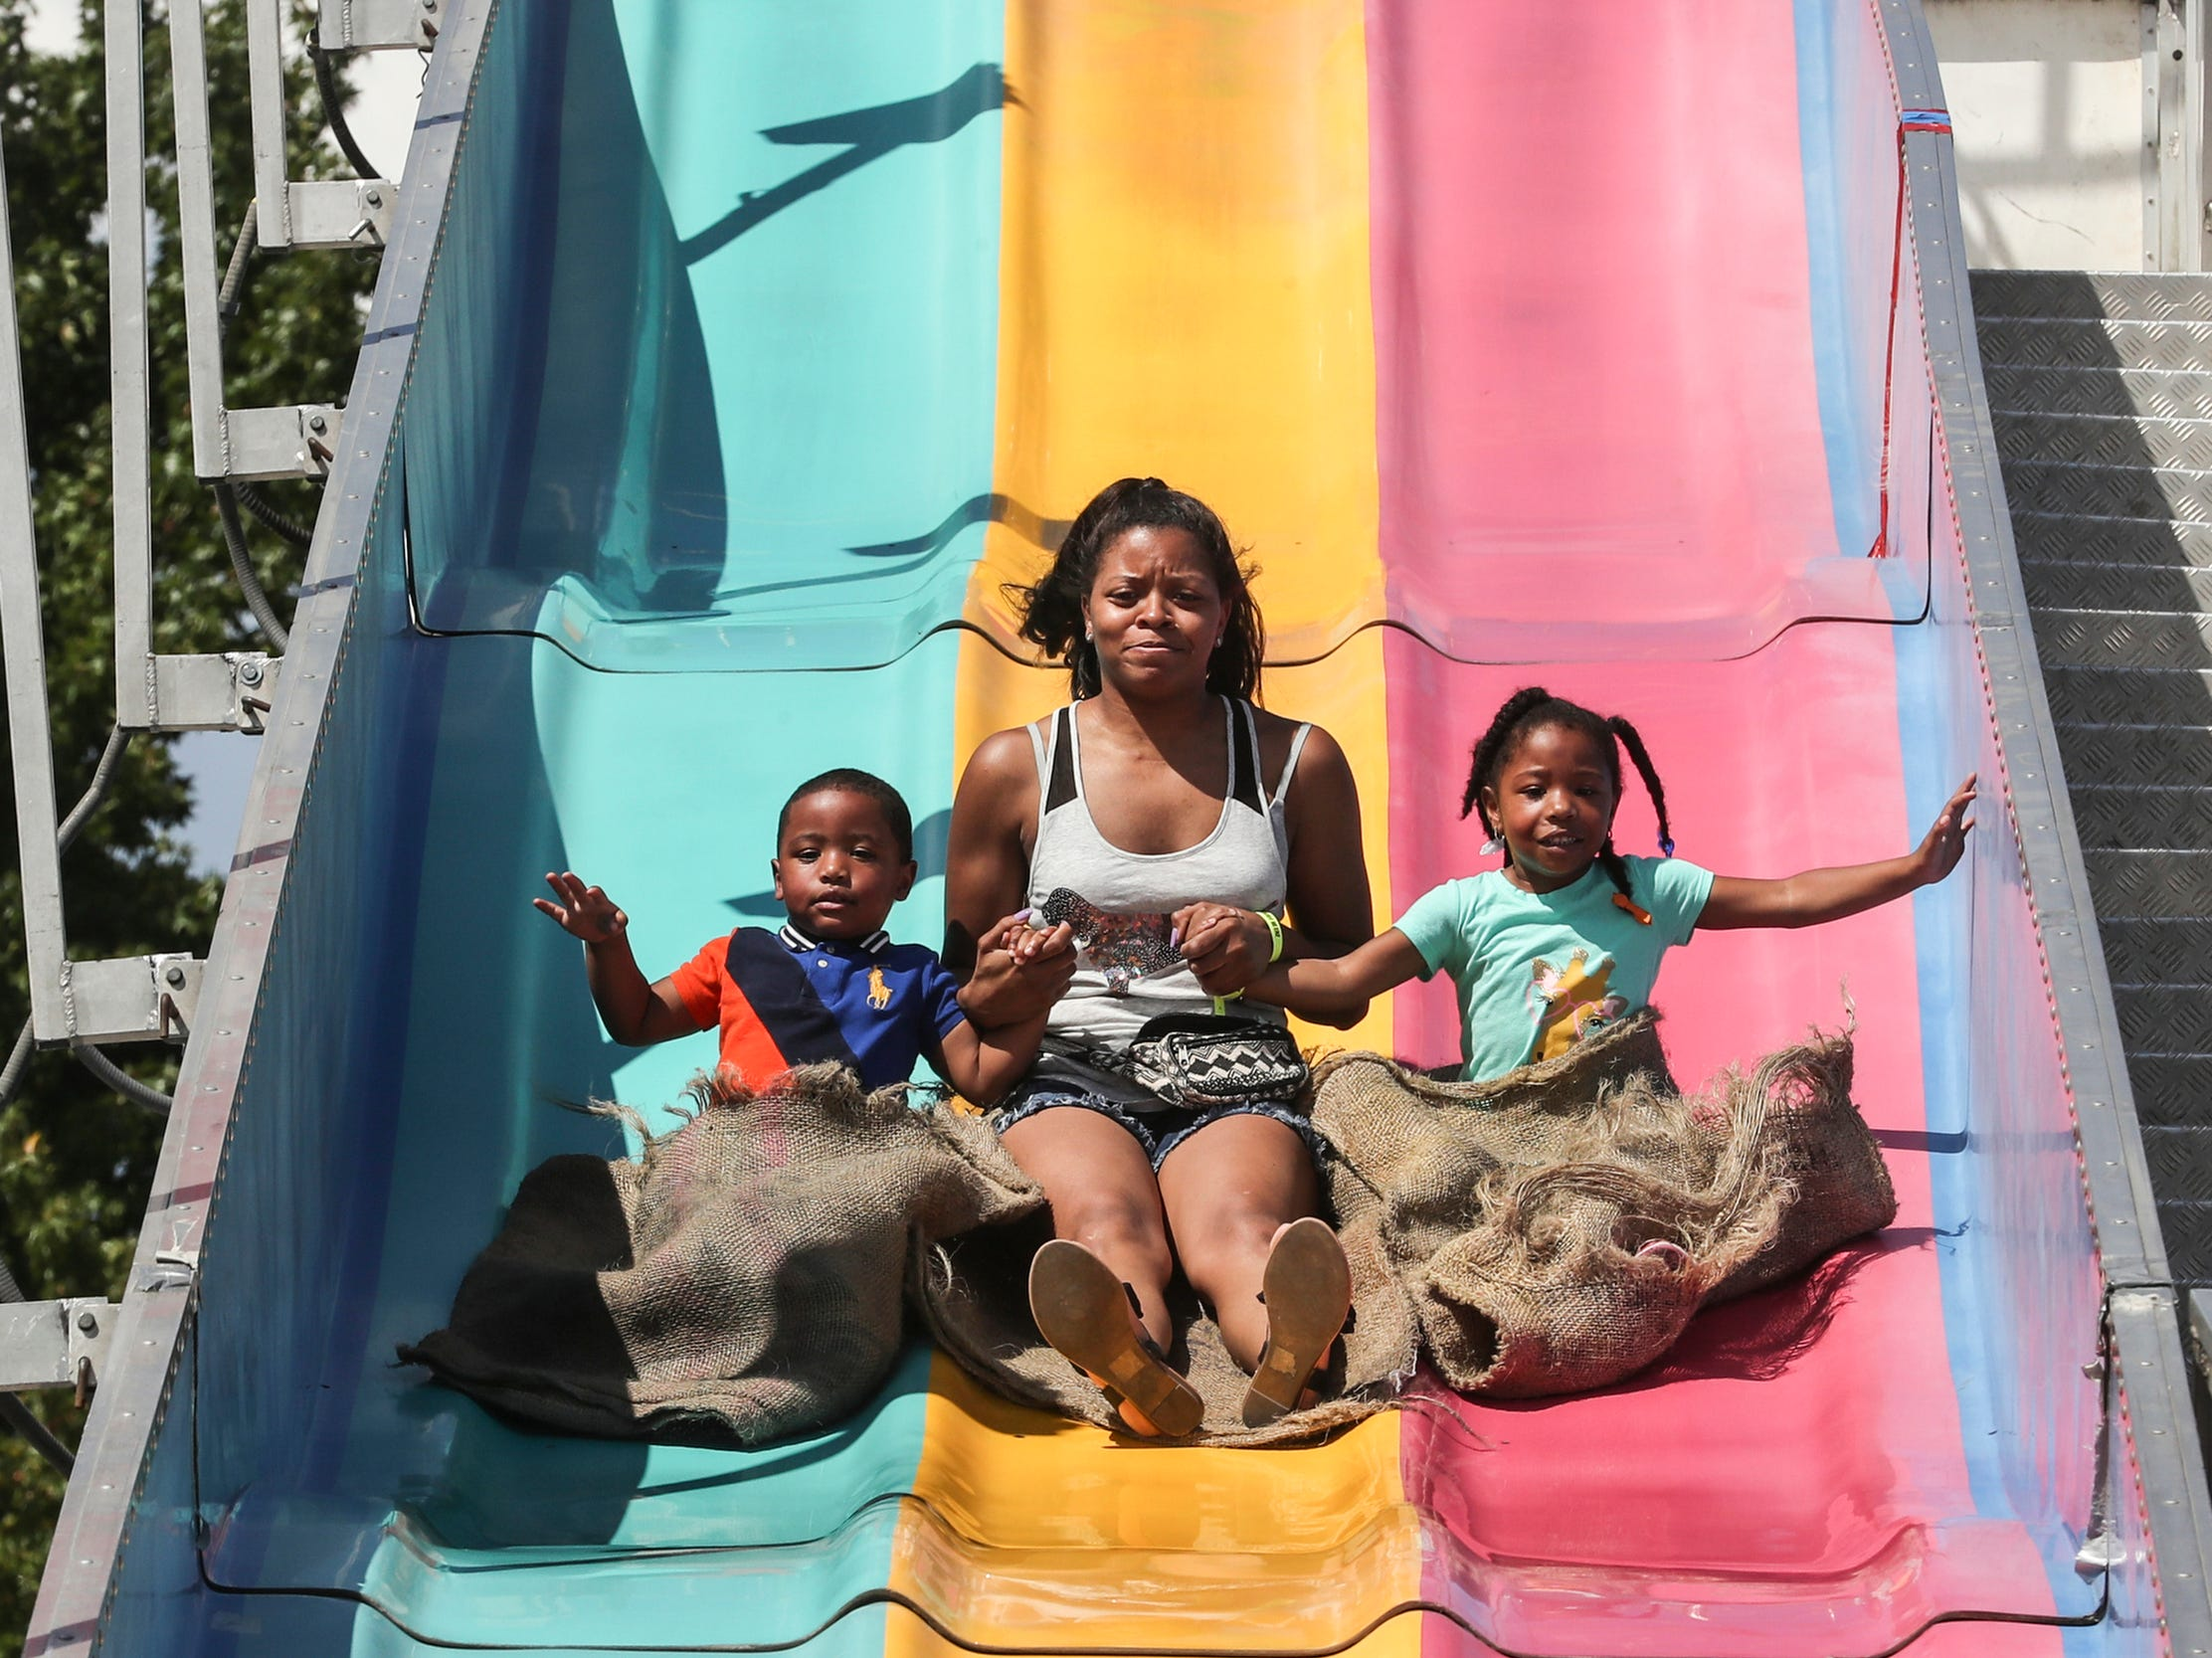 September 02 2018 - Riders head down a slide while at the Delta Fair at the Agricenter. The Delta Fair runs through September 9.